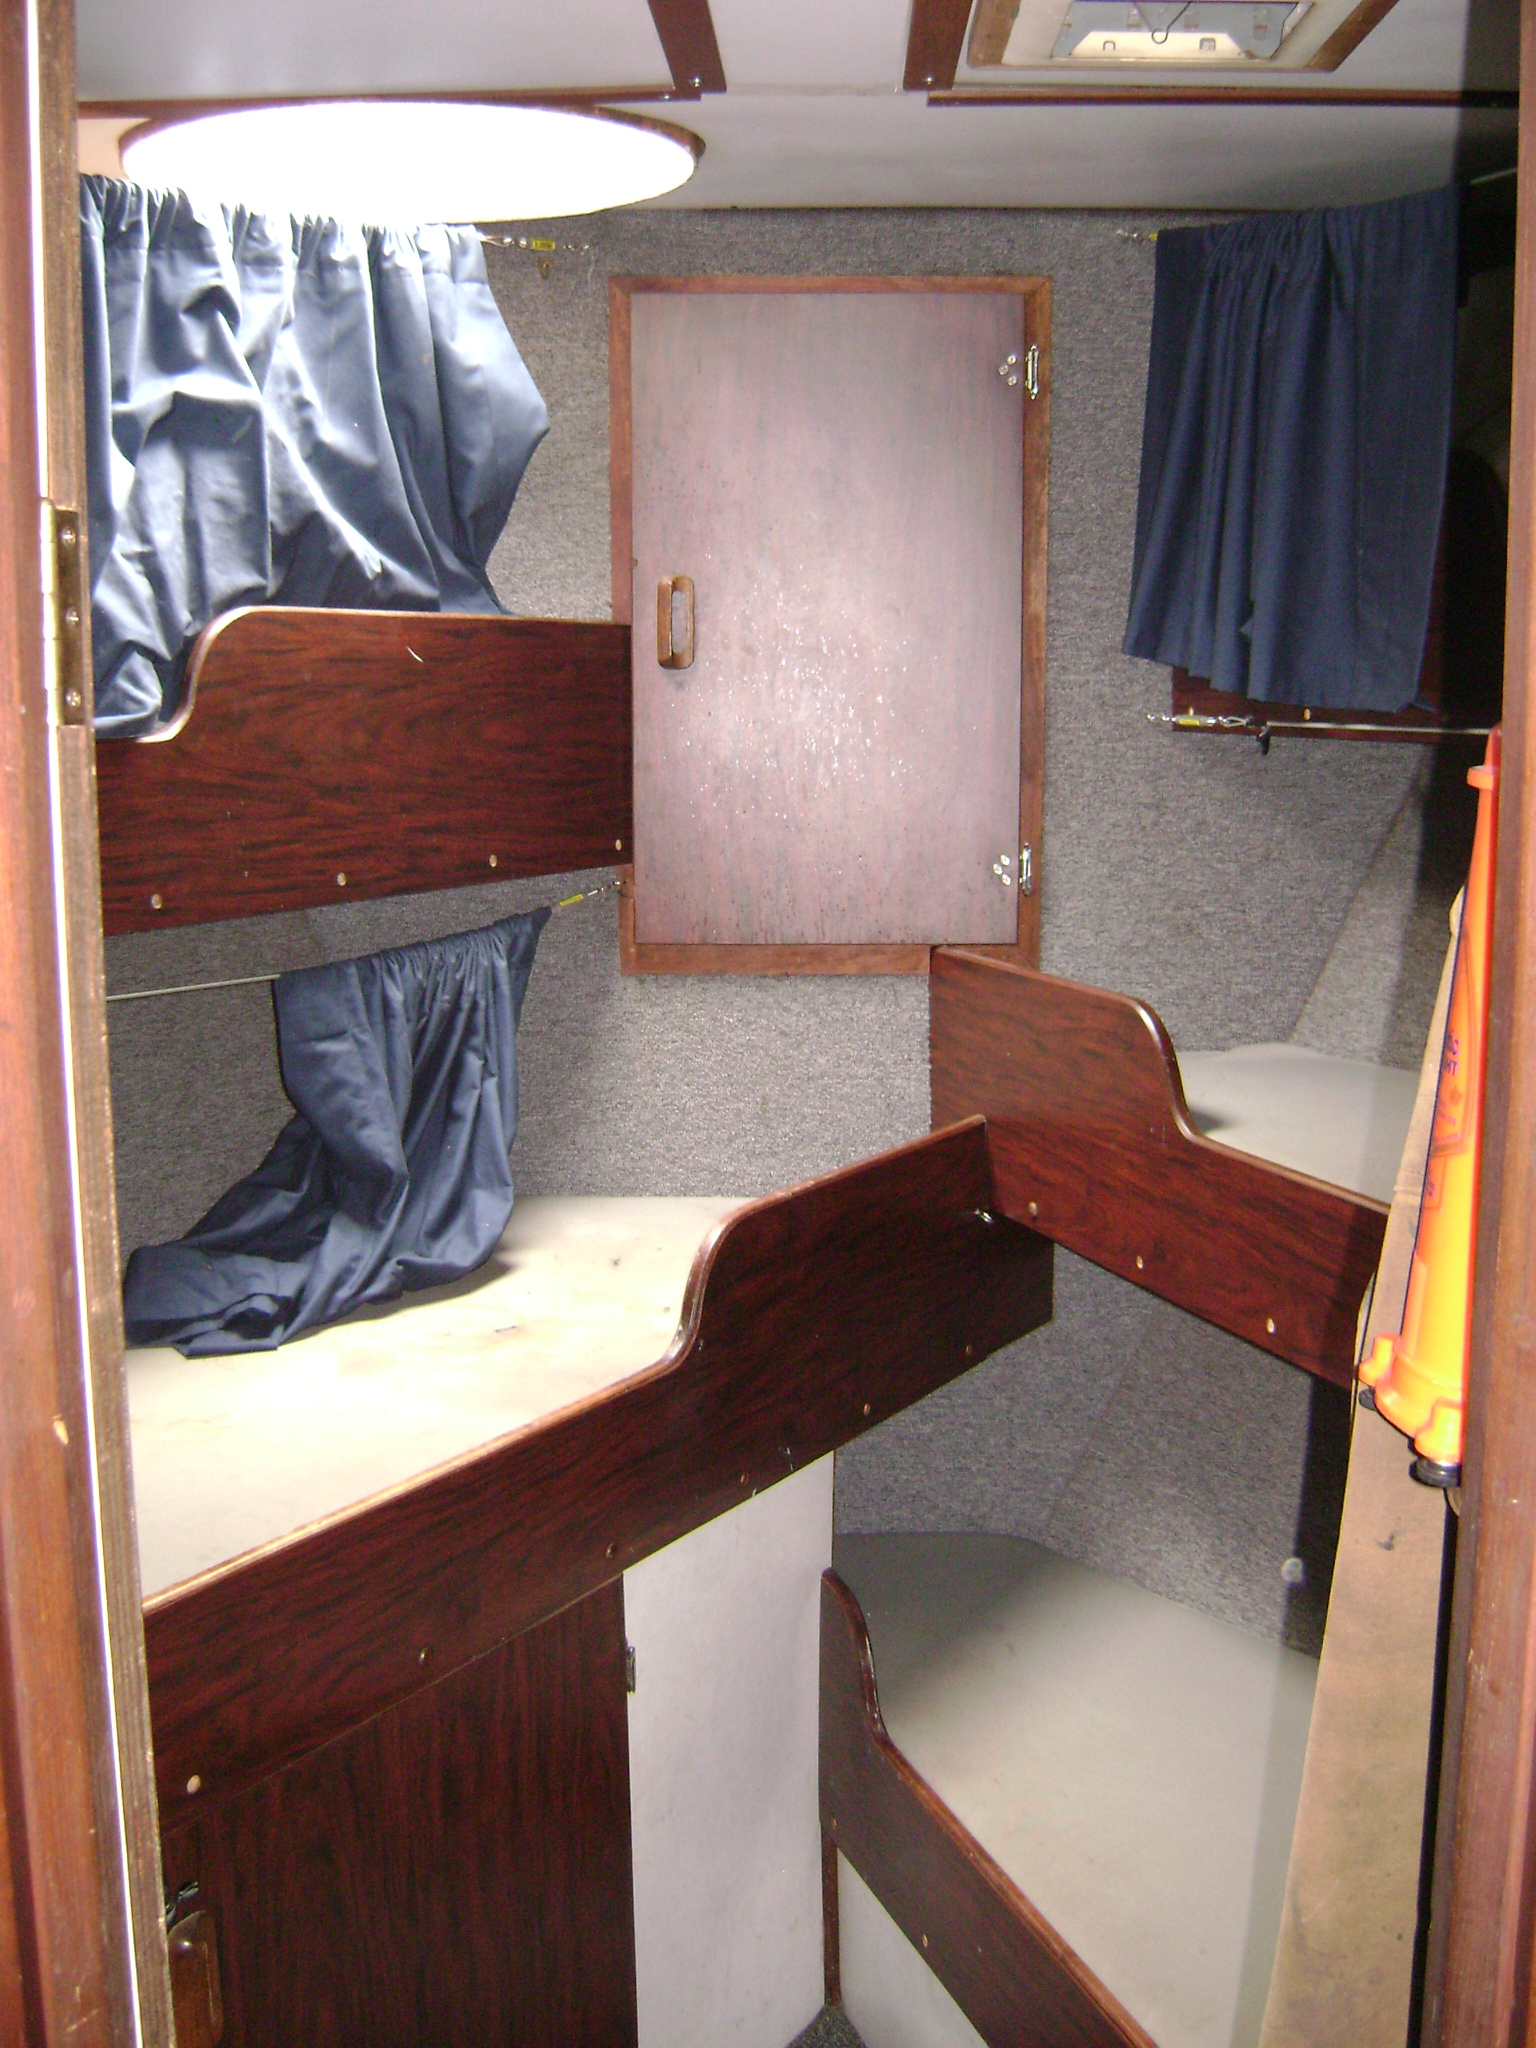 Your bunk at sea